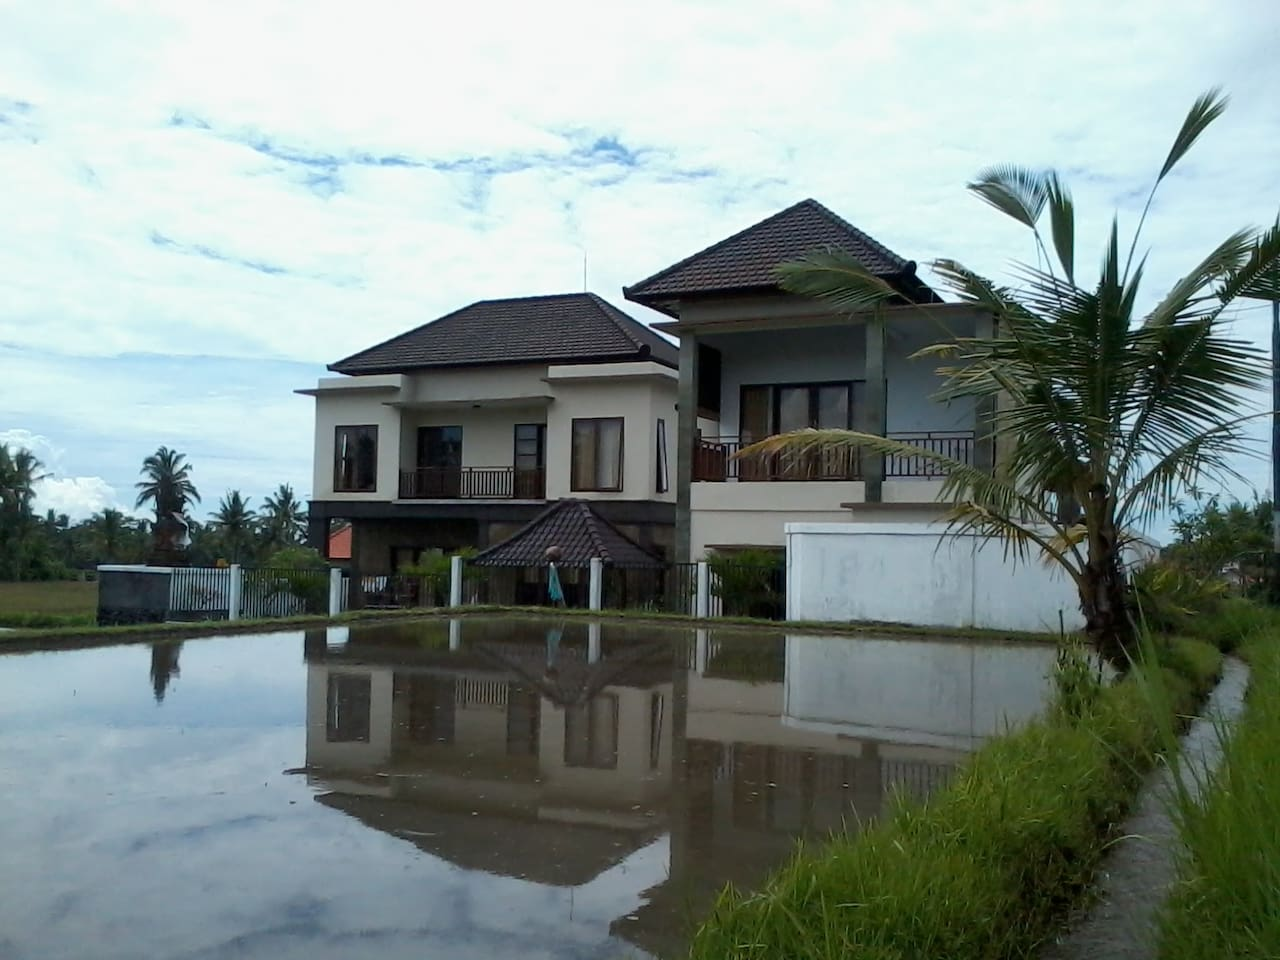 Side view next to rice field